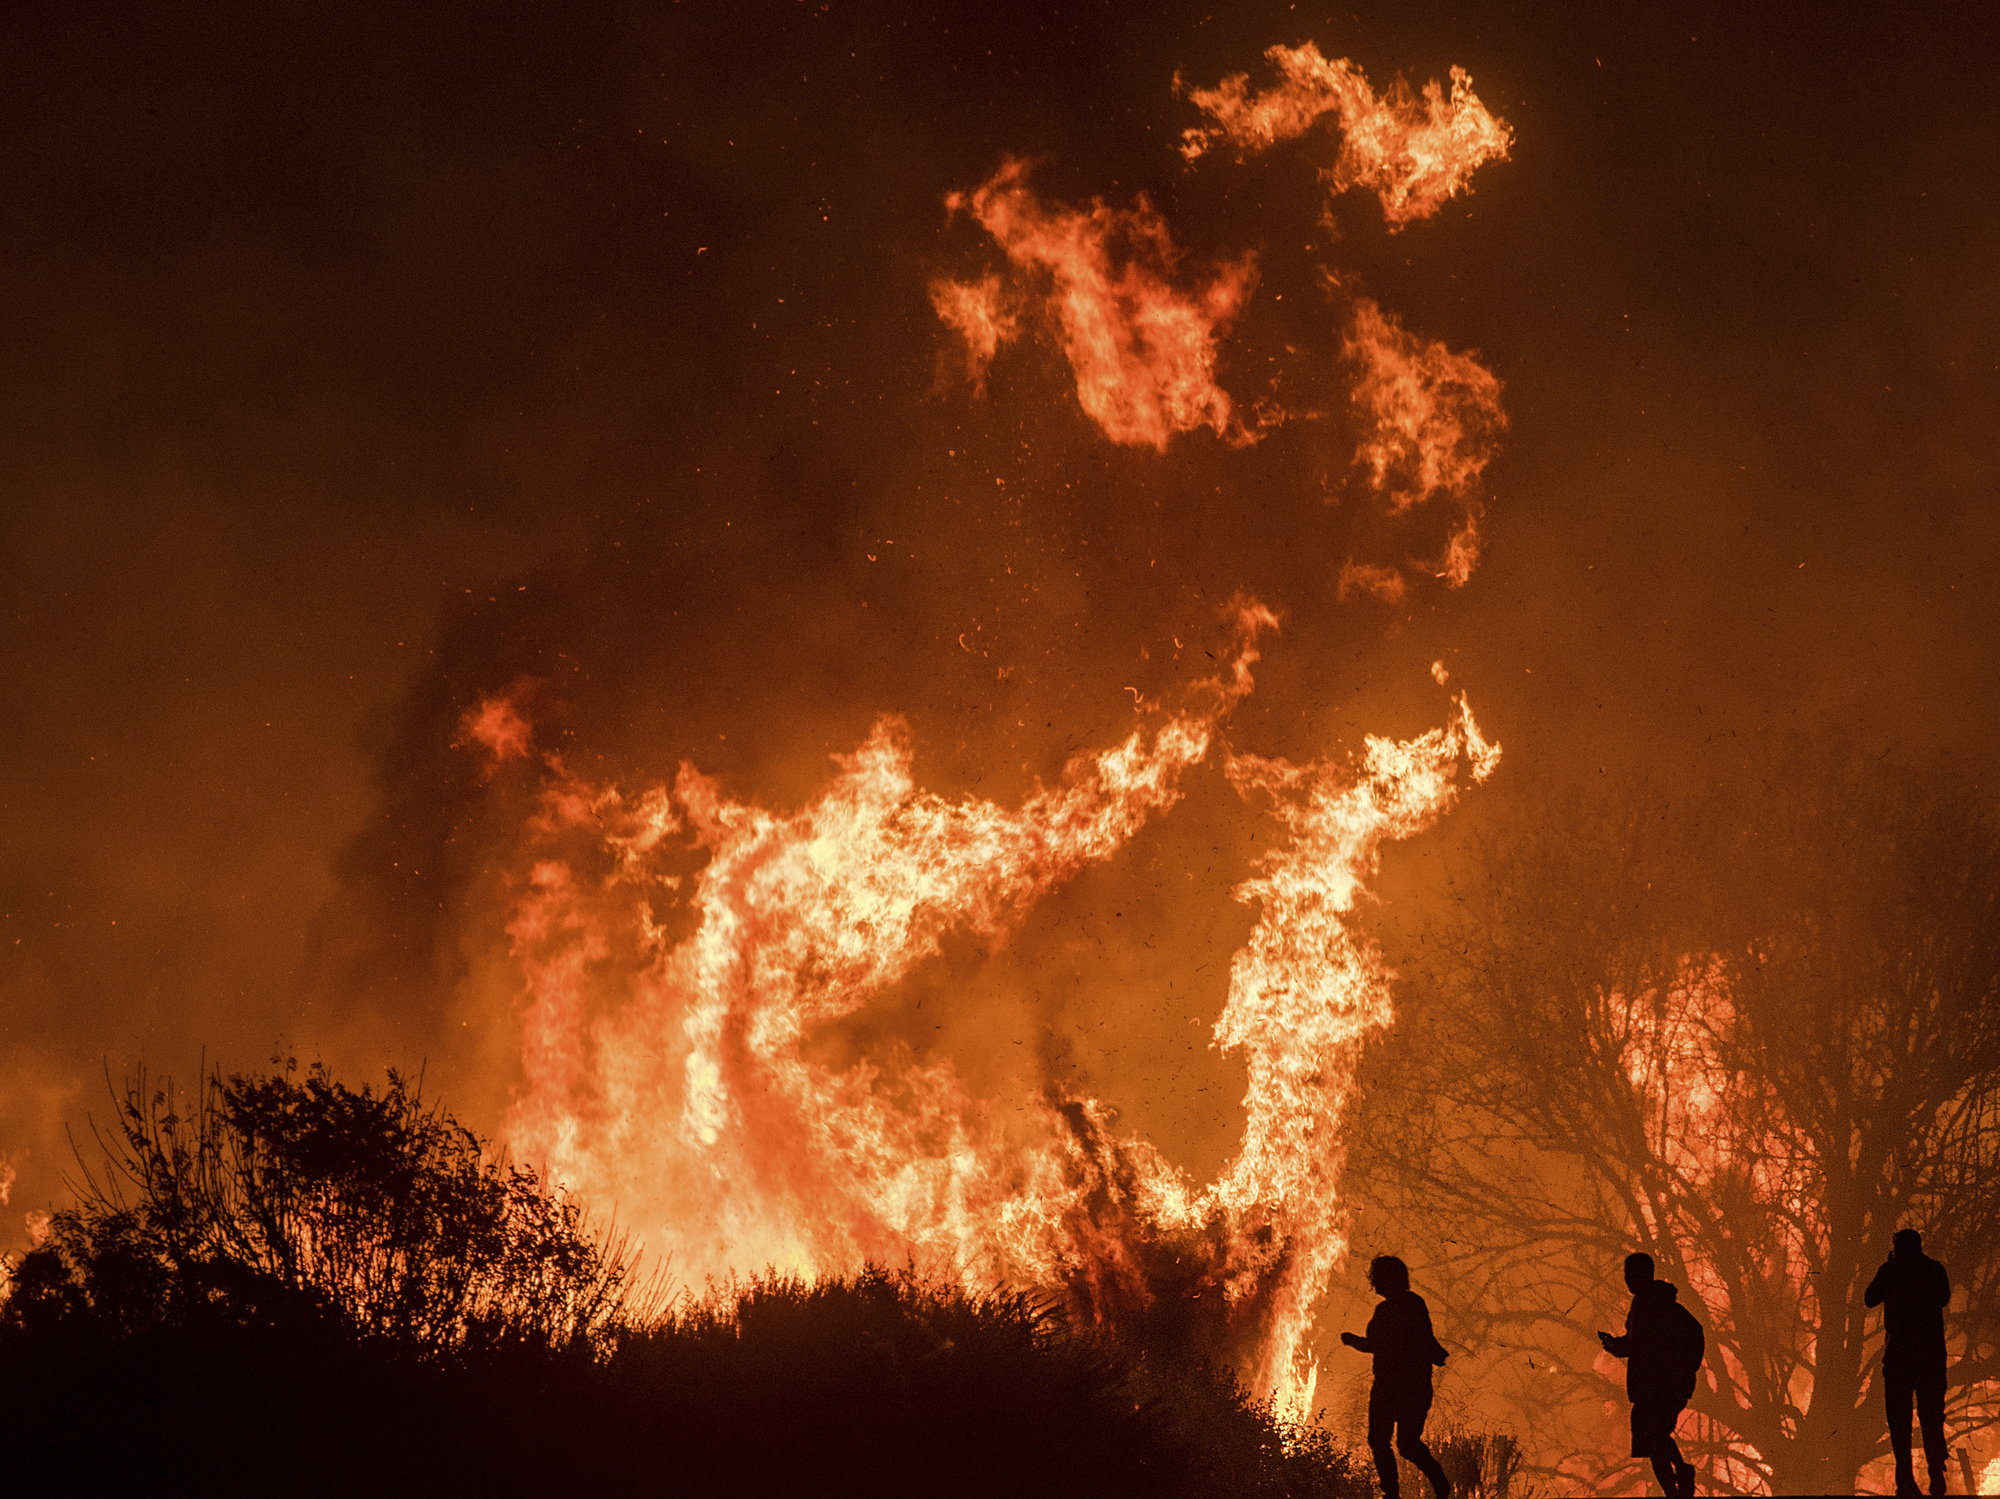 Southern California braces: Forecasters say even stronger